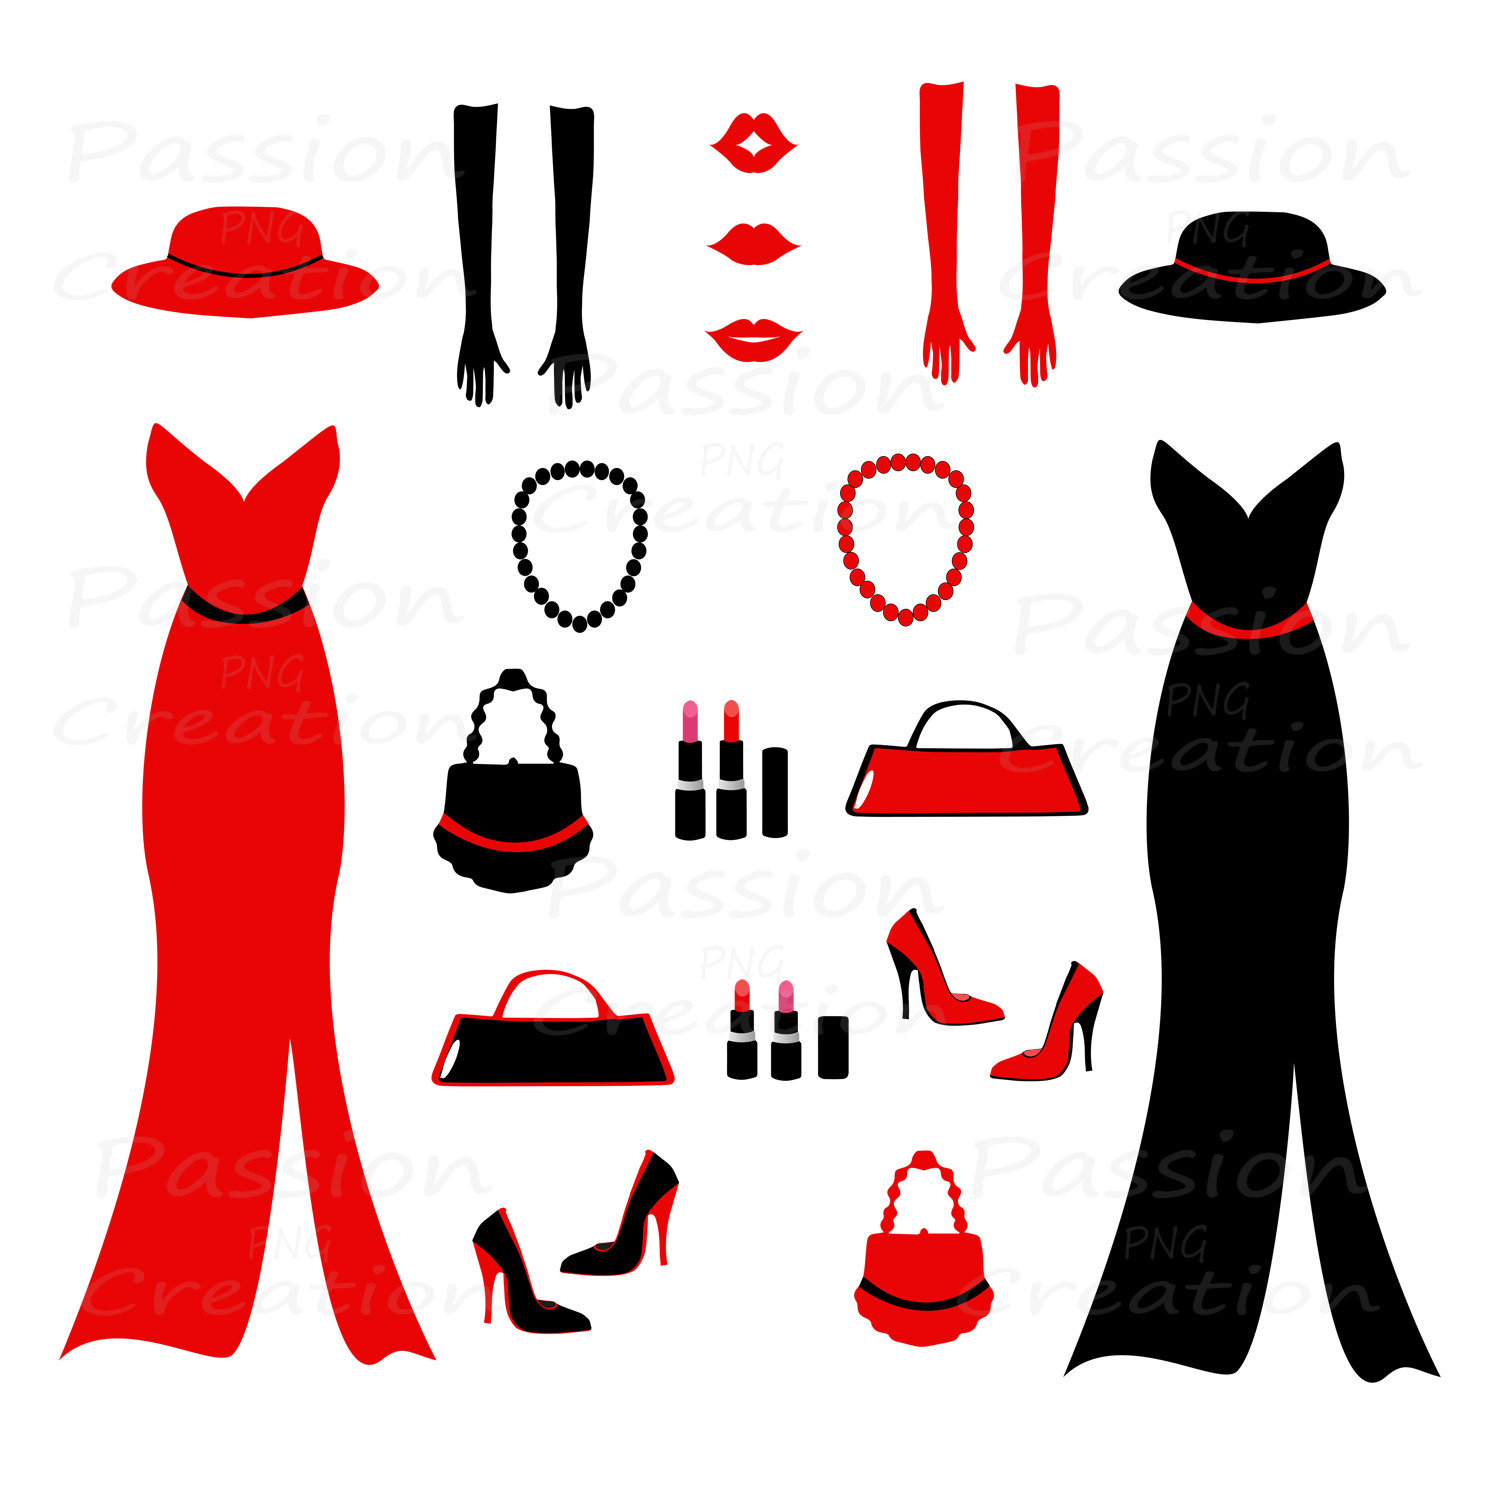 Fashion clip art images illustrations photos.